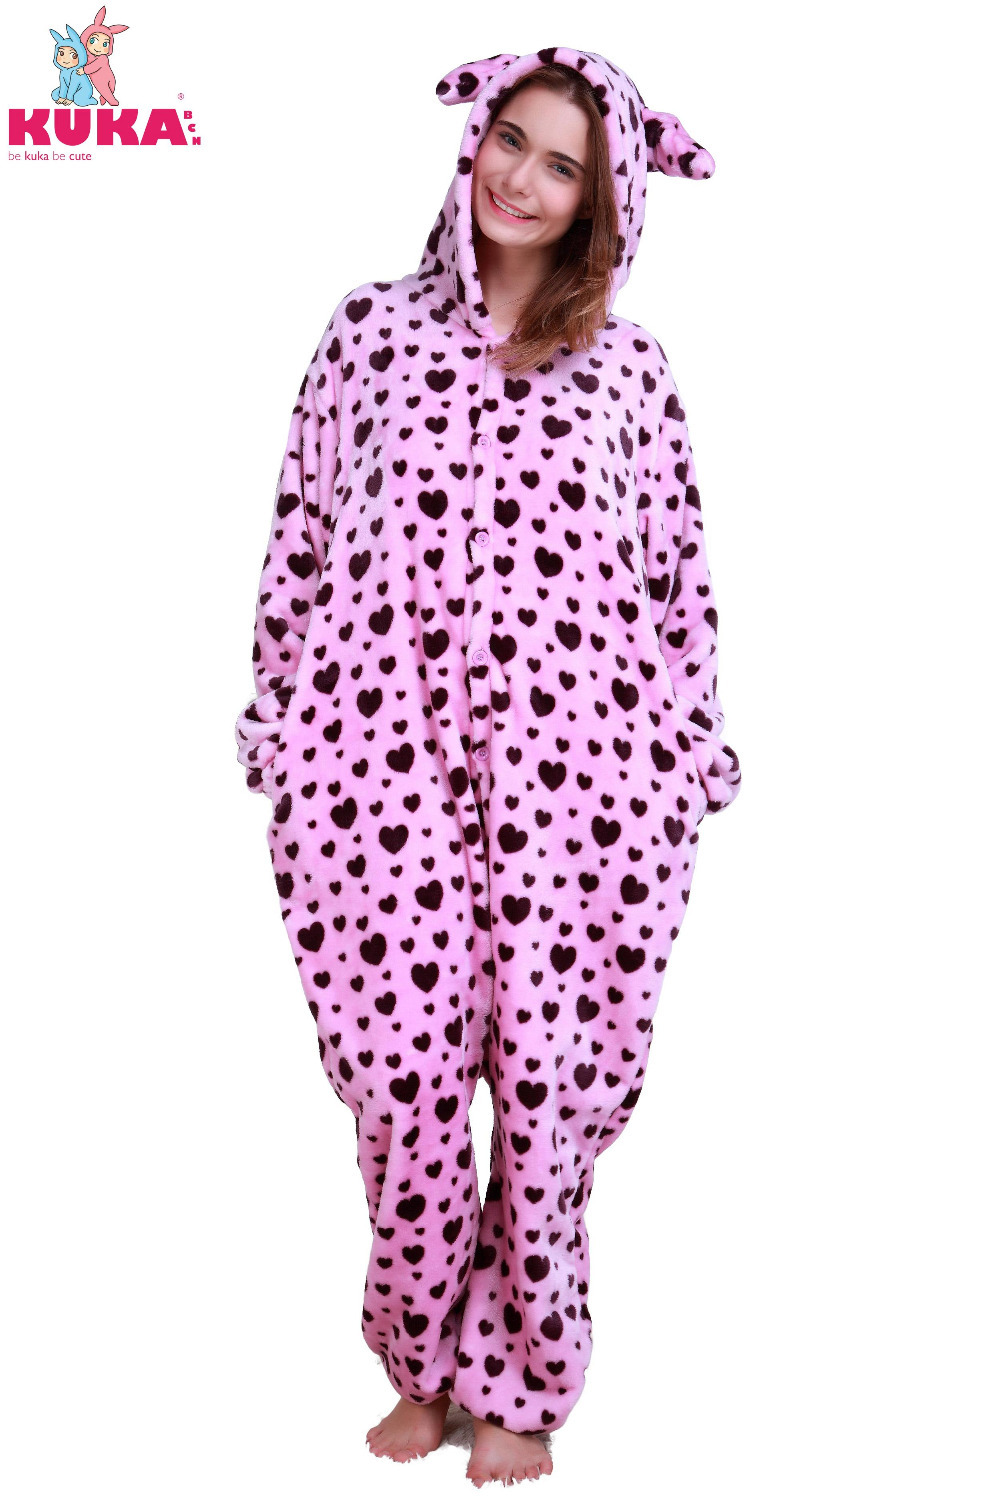 dcf080c1e5 Get Quotations · 2015 New Adult s Purple Spots Onesie Marten Fleece Pijama  Cosplay Costume Pajama For Free Shipping